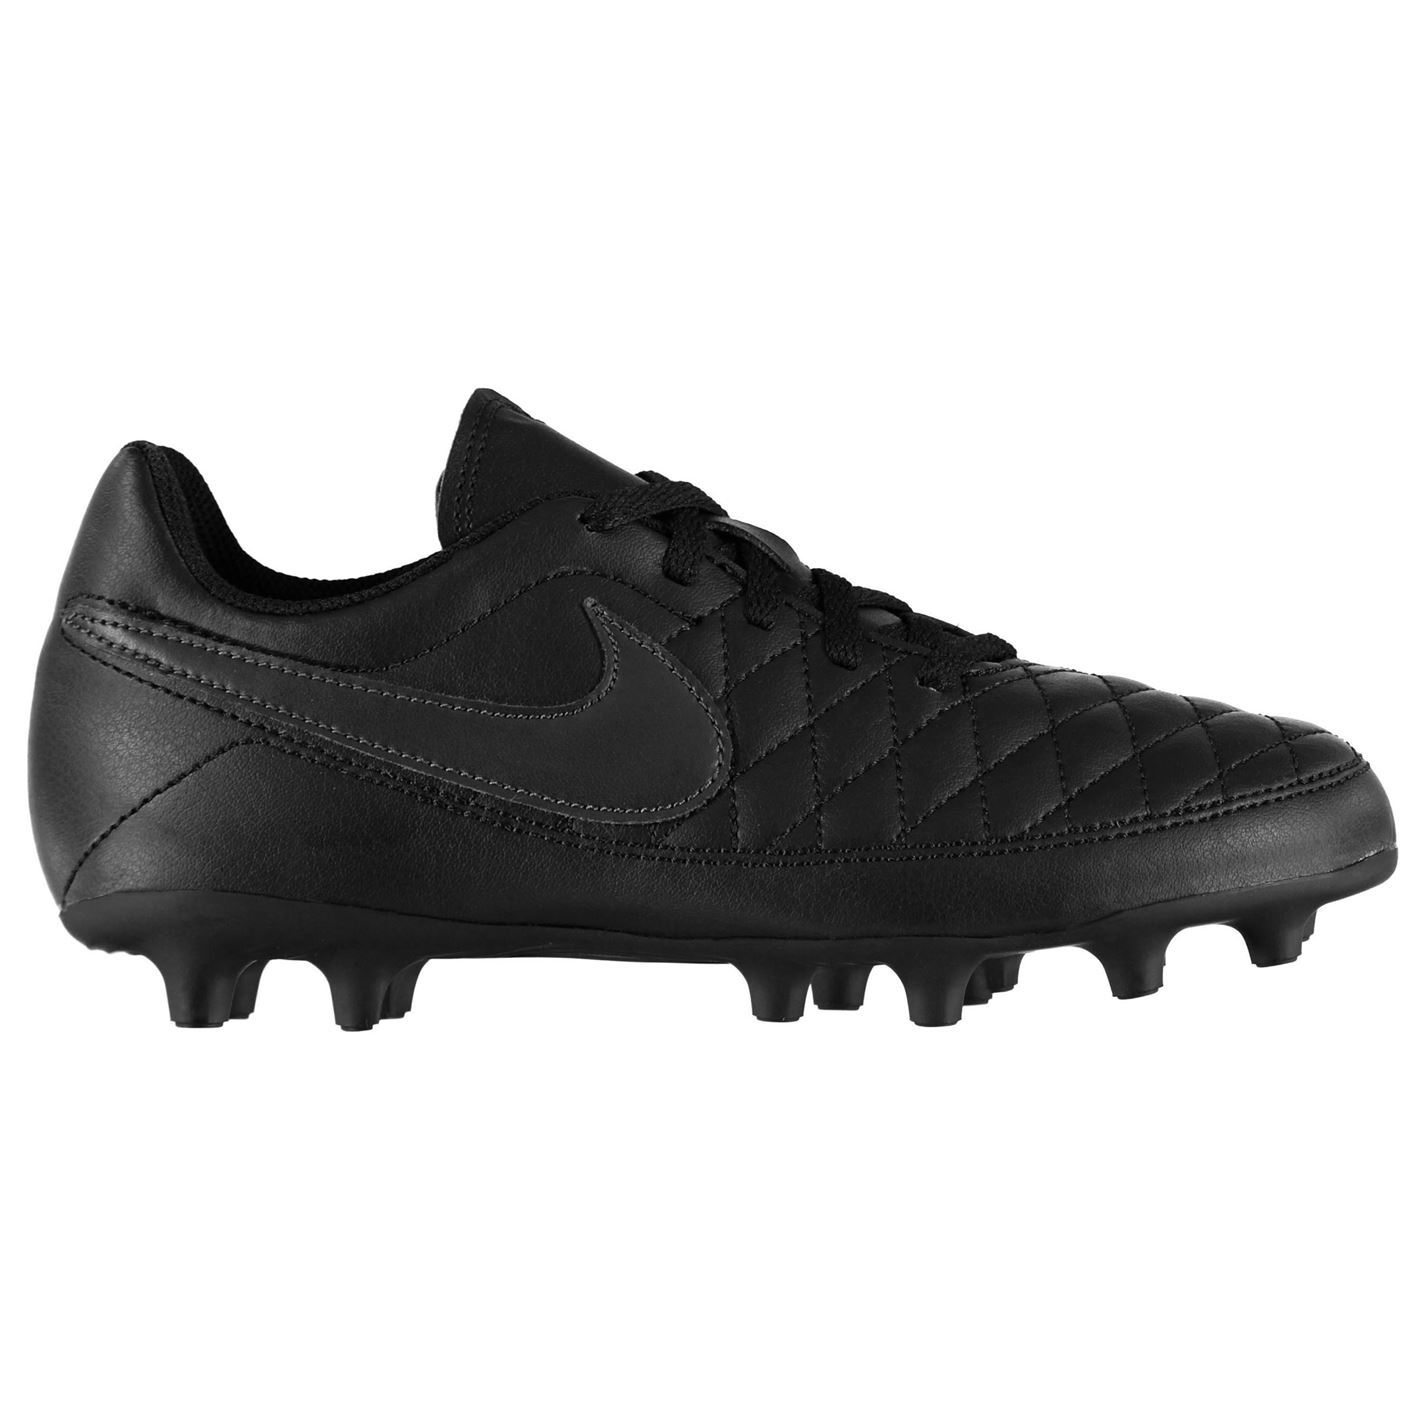 Nike-majestry-FG-Firm-Ground-Chaussures-De-Football-Enfants-Football-Chaussures-Crampons miniature 7